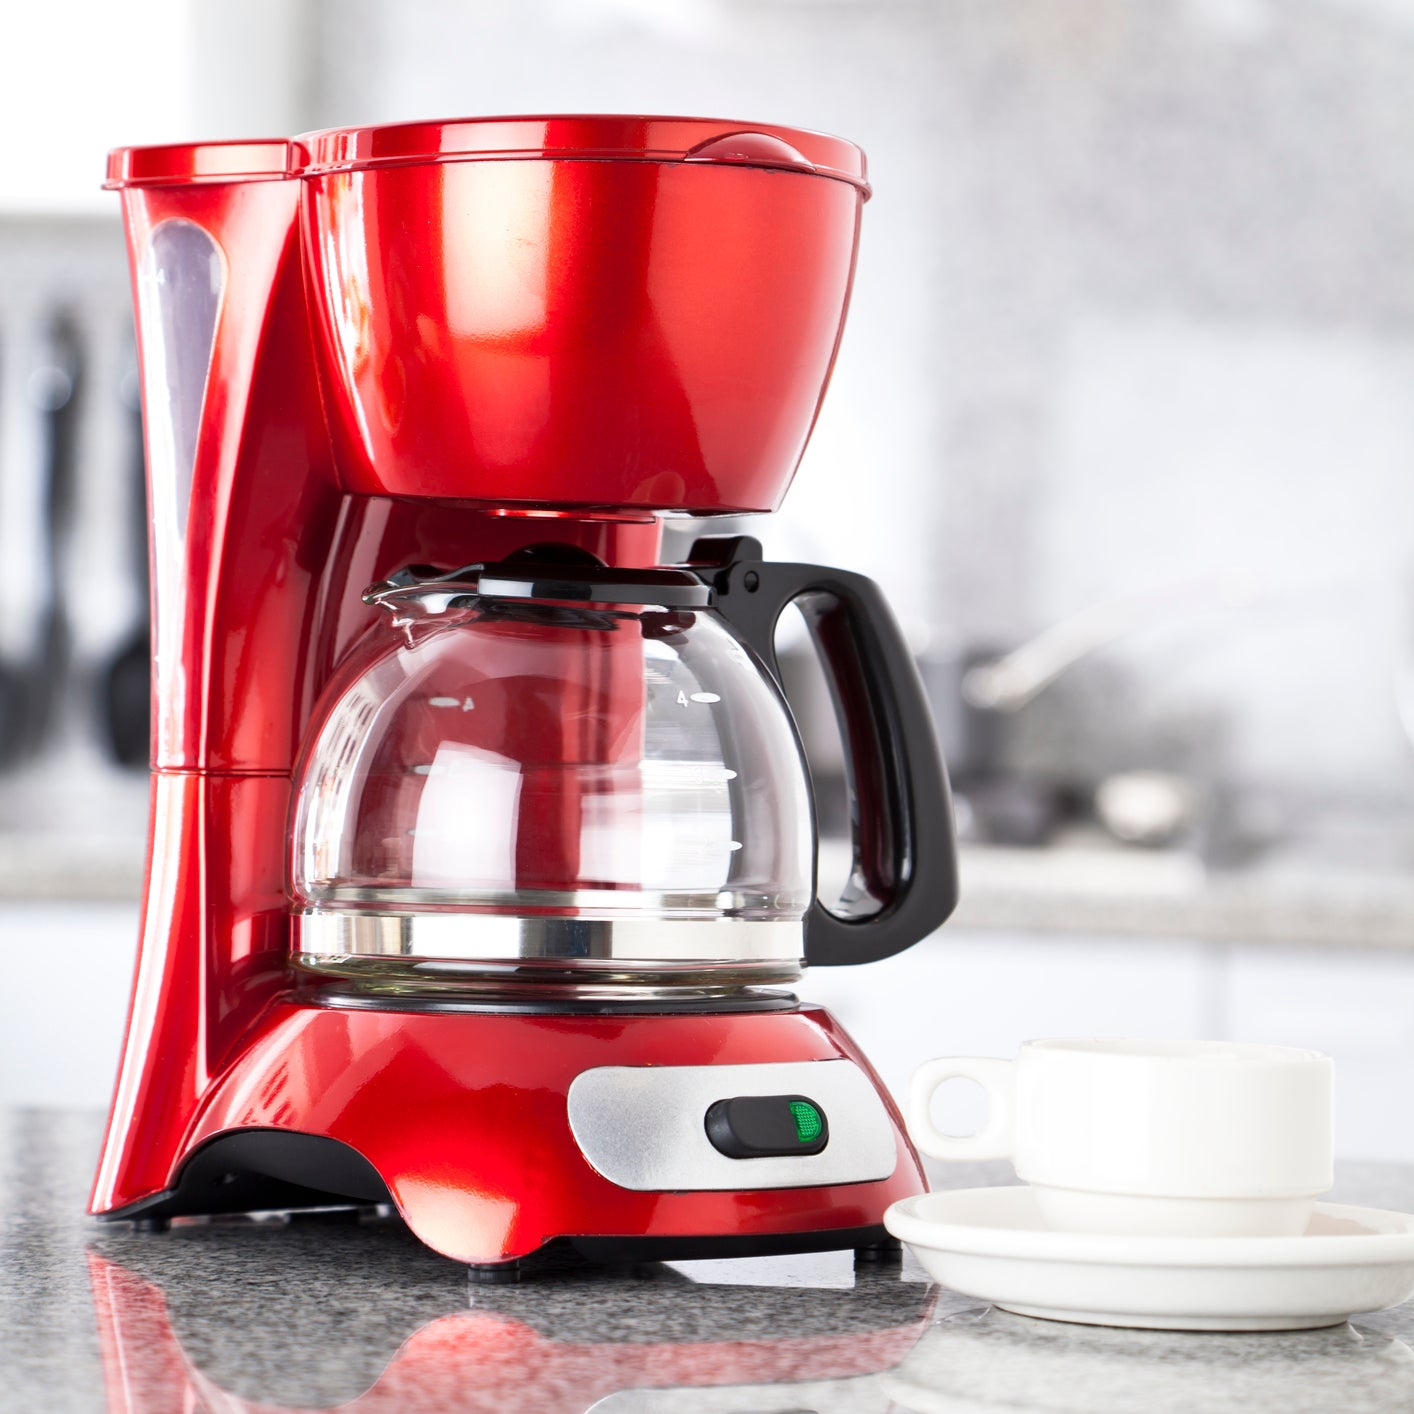 Coffee Maker Terbaik 2017 : Video: Your Coffee Maker Is More Versatile Than You Think - Bob Vila